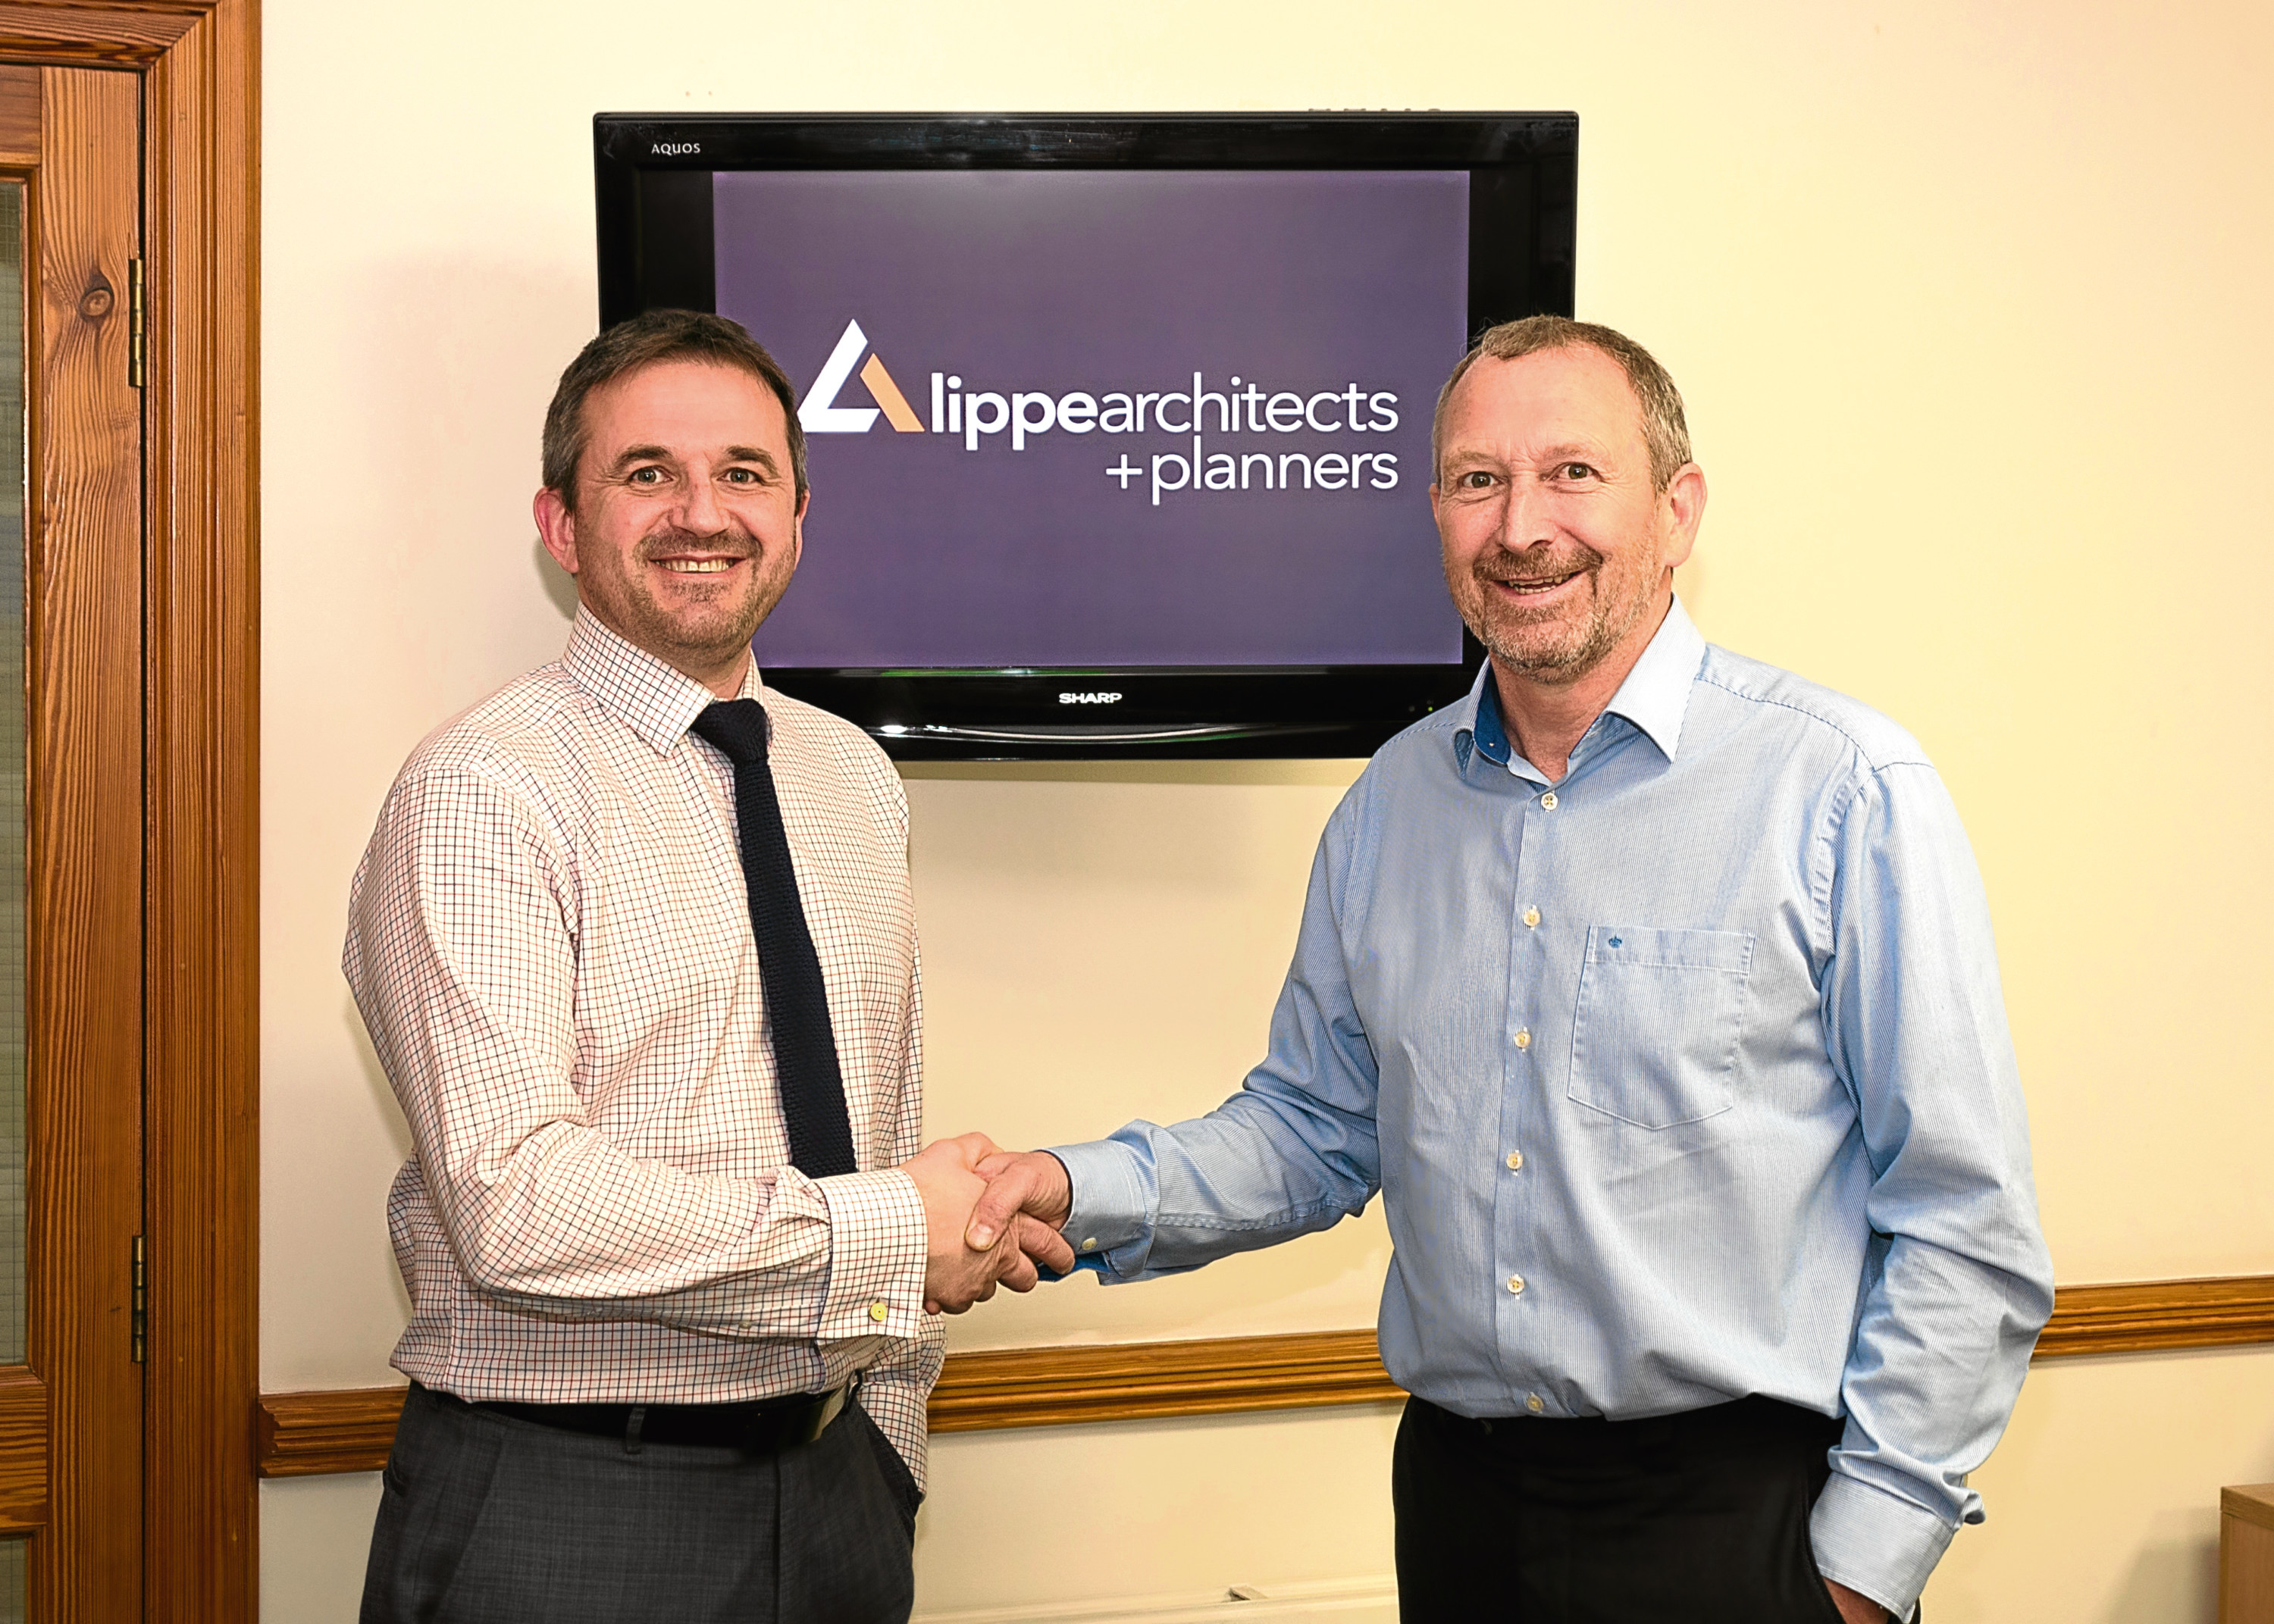 New managing director Stewart Naysmith, left, with William Lippe at Lippe Architects